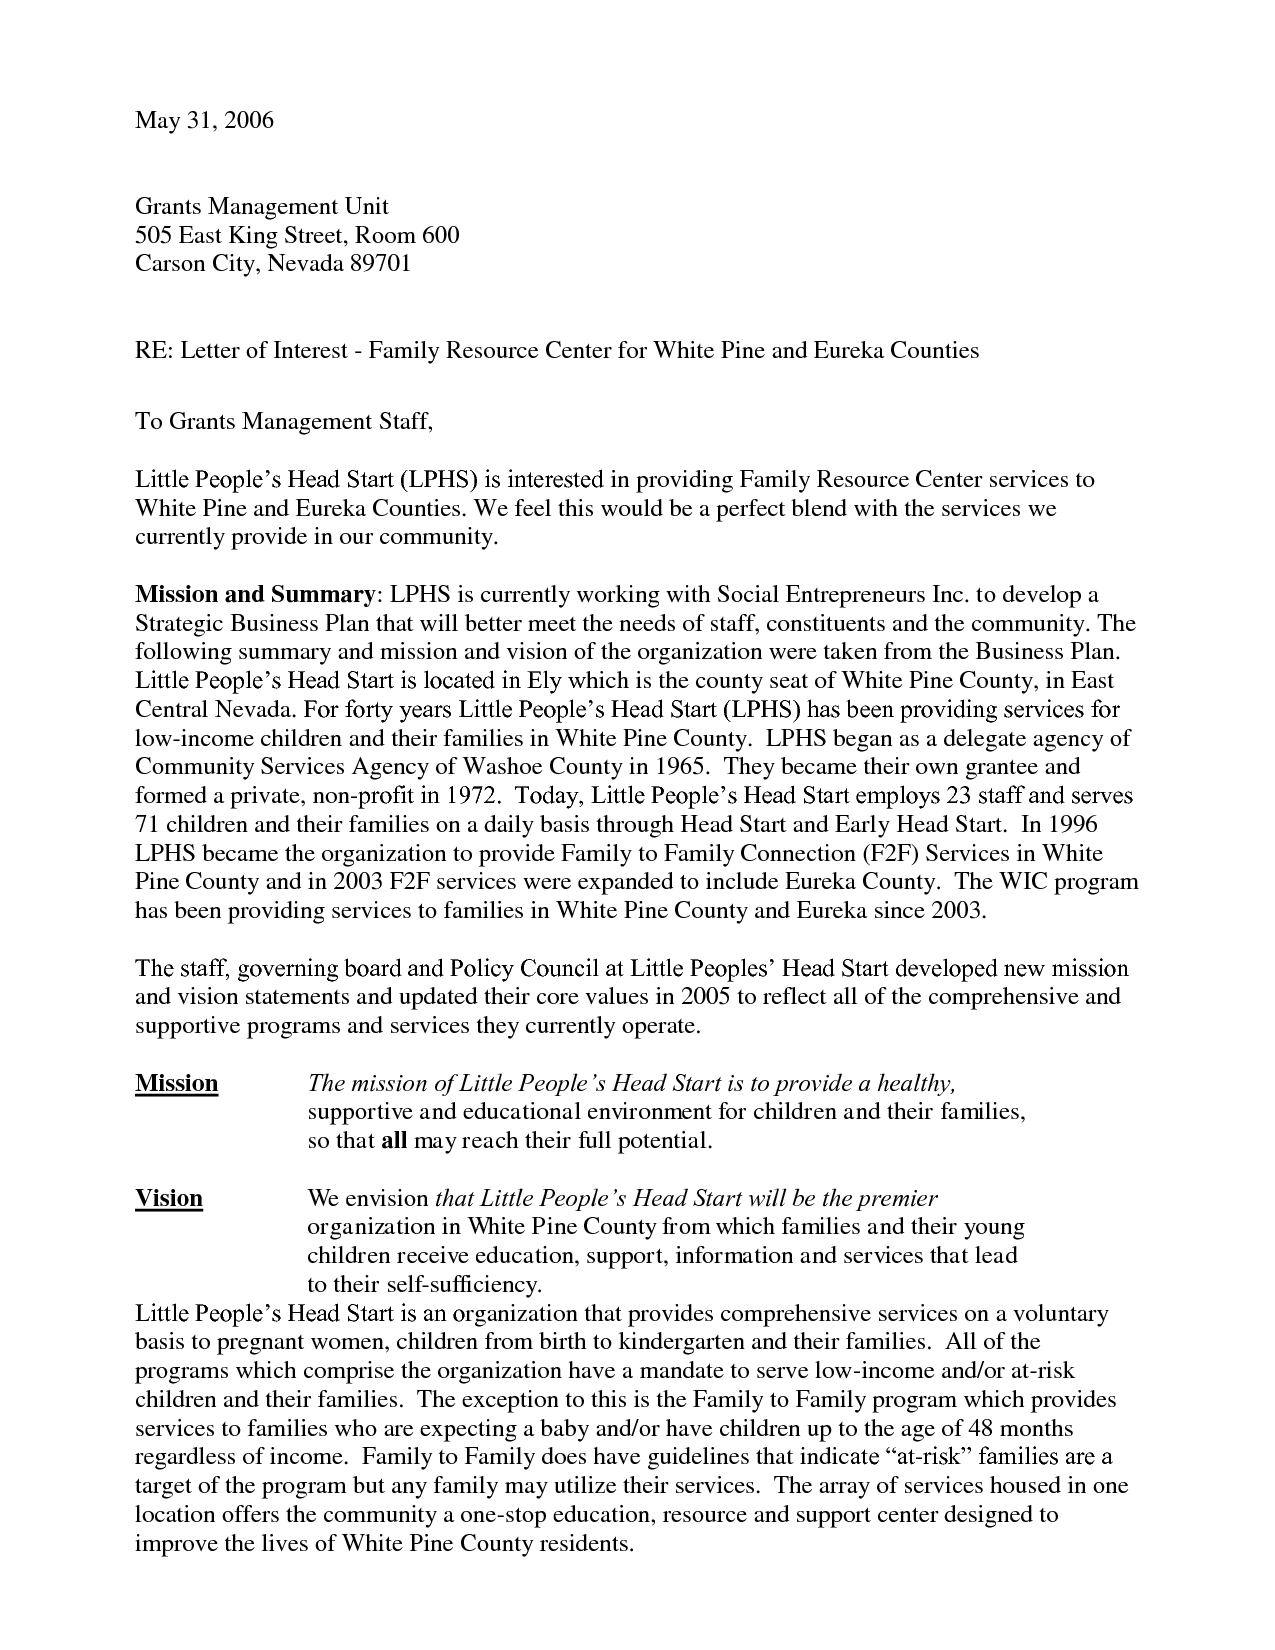 cover letter of interest template write about your internship ...